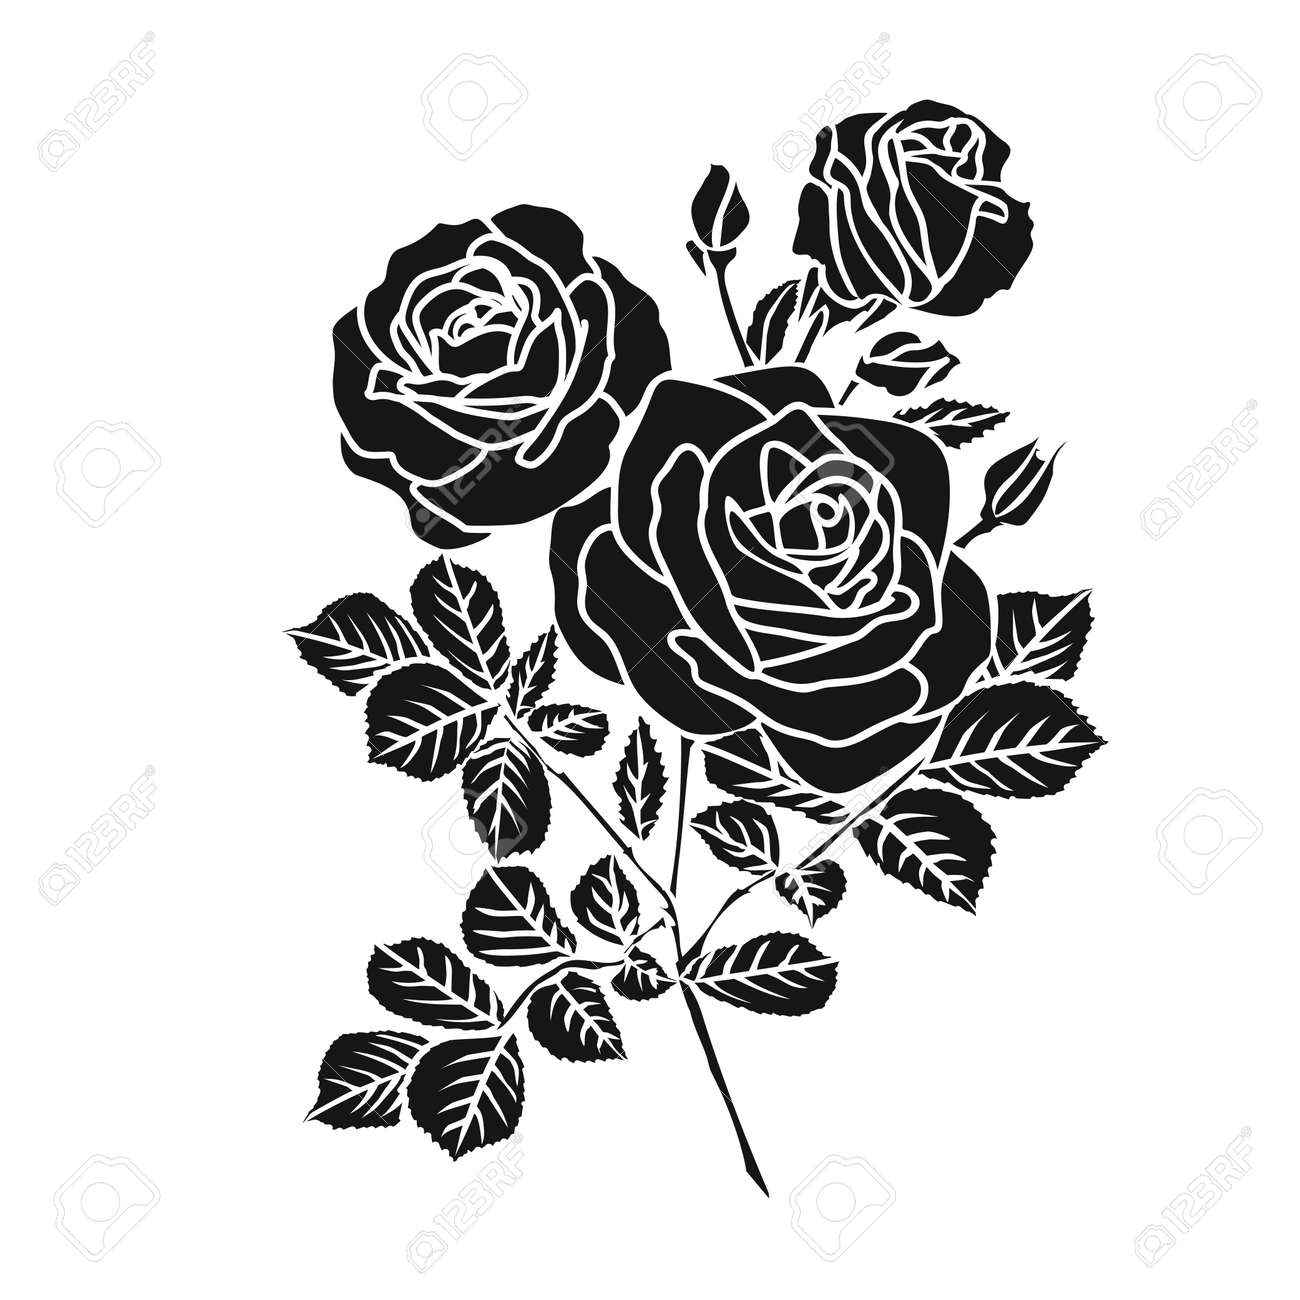 Silhouette Of Rose Vector Illustration Royalty Free Cliparts